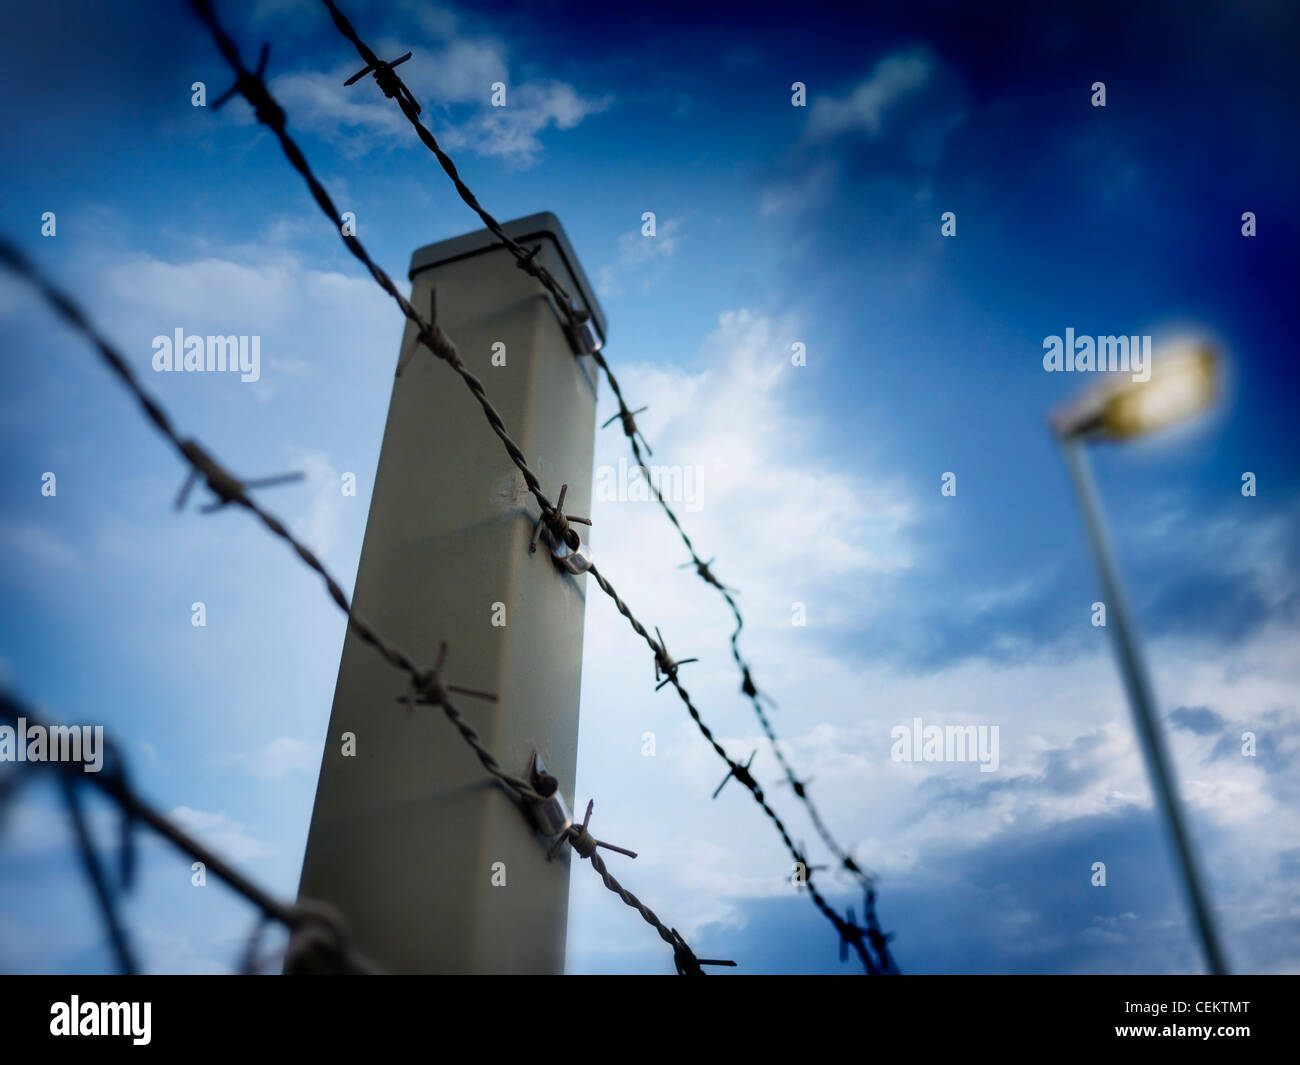 barbed wire against evening sky - Stock Image